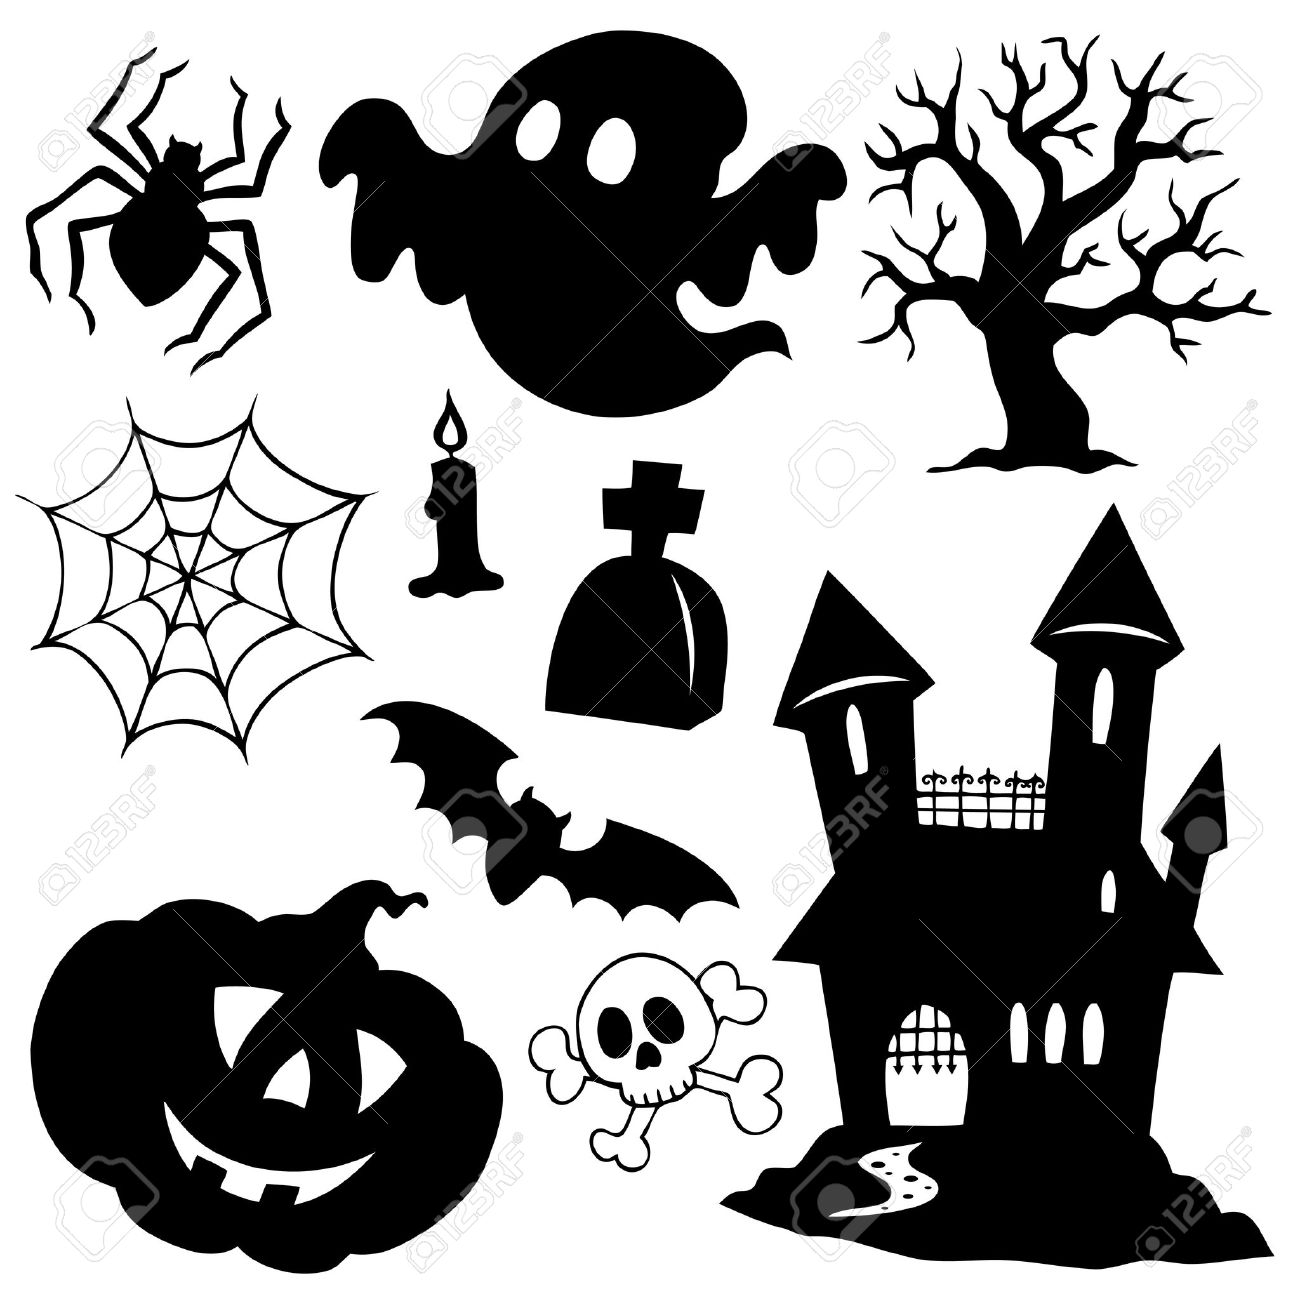 Halloween Silhouettes Collection 1 Stock Photo, Picture And ...